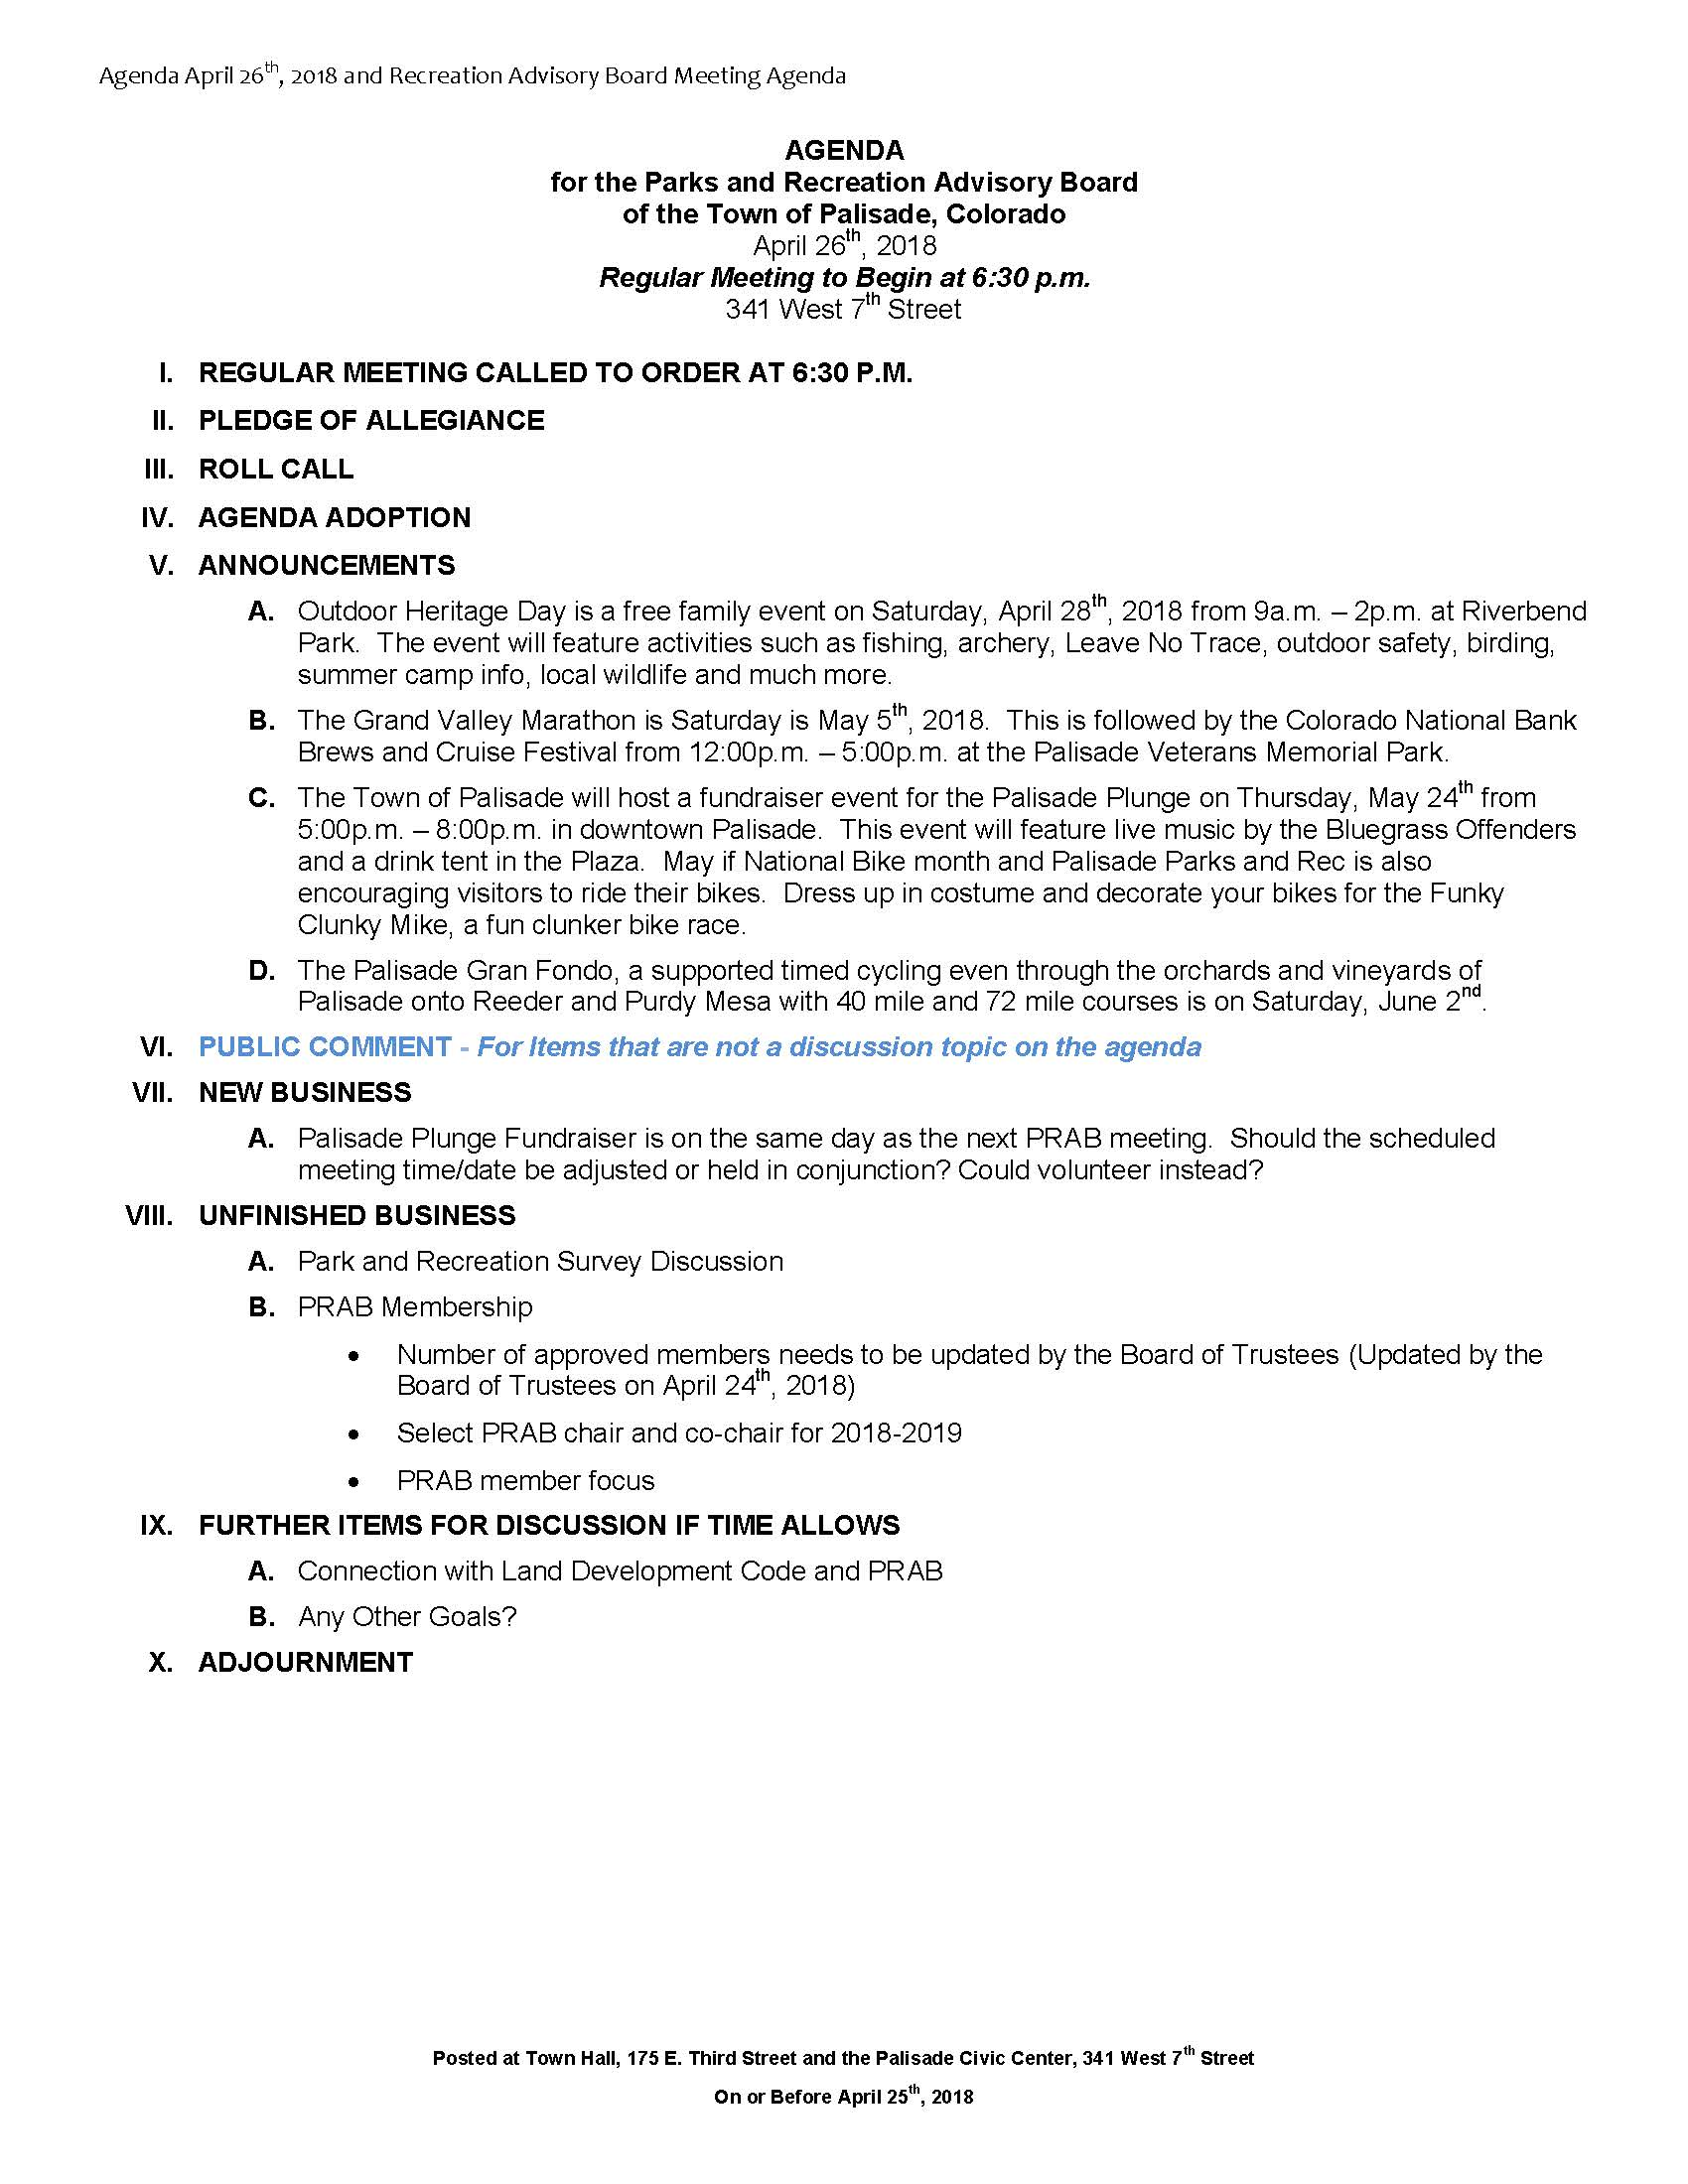 April 26th 2018 PRAB Meeting Agenda